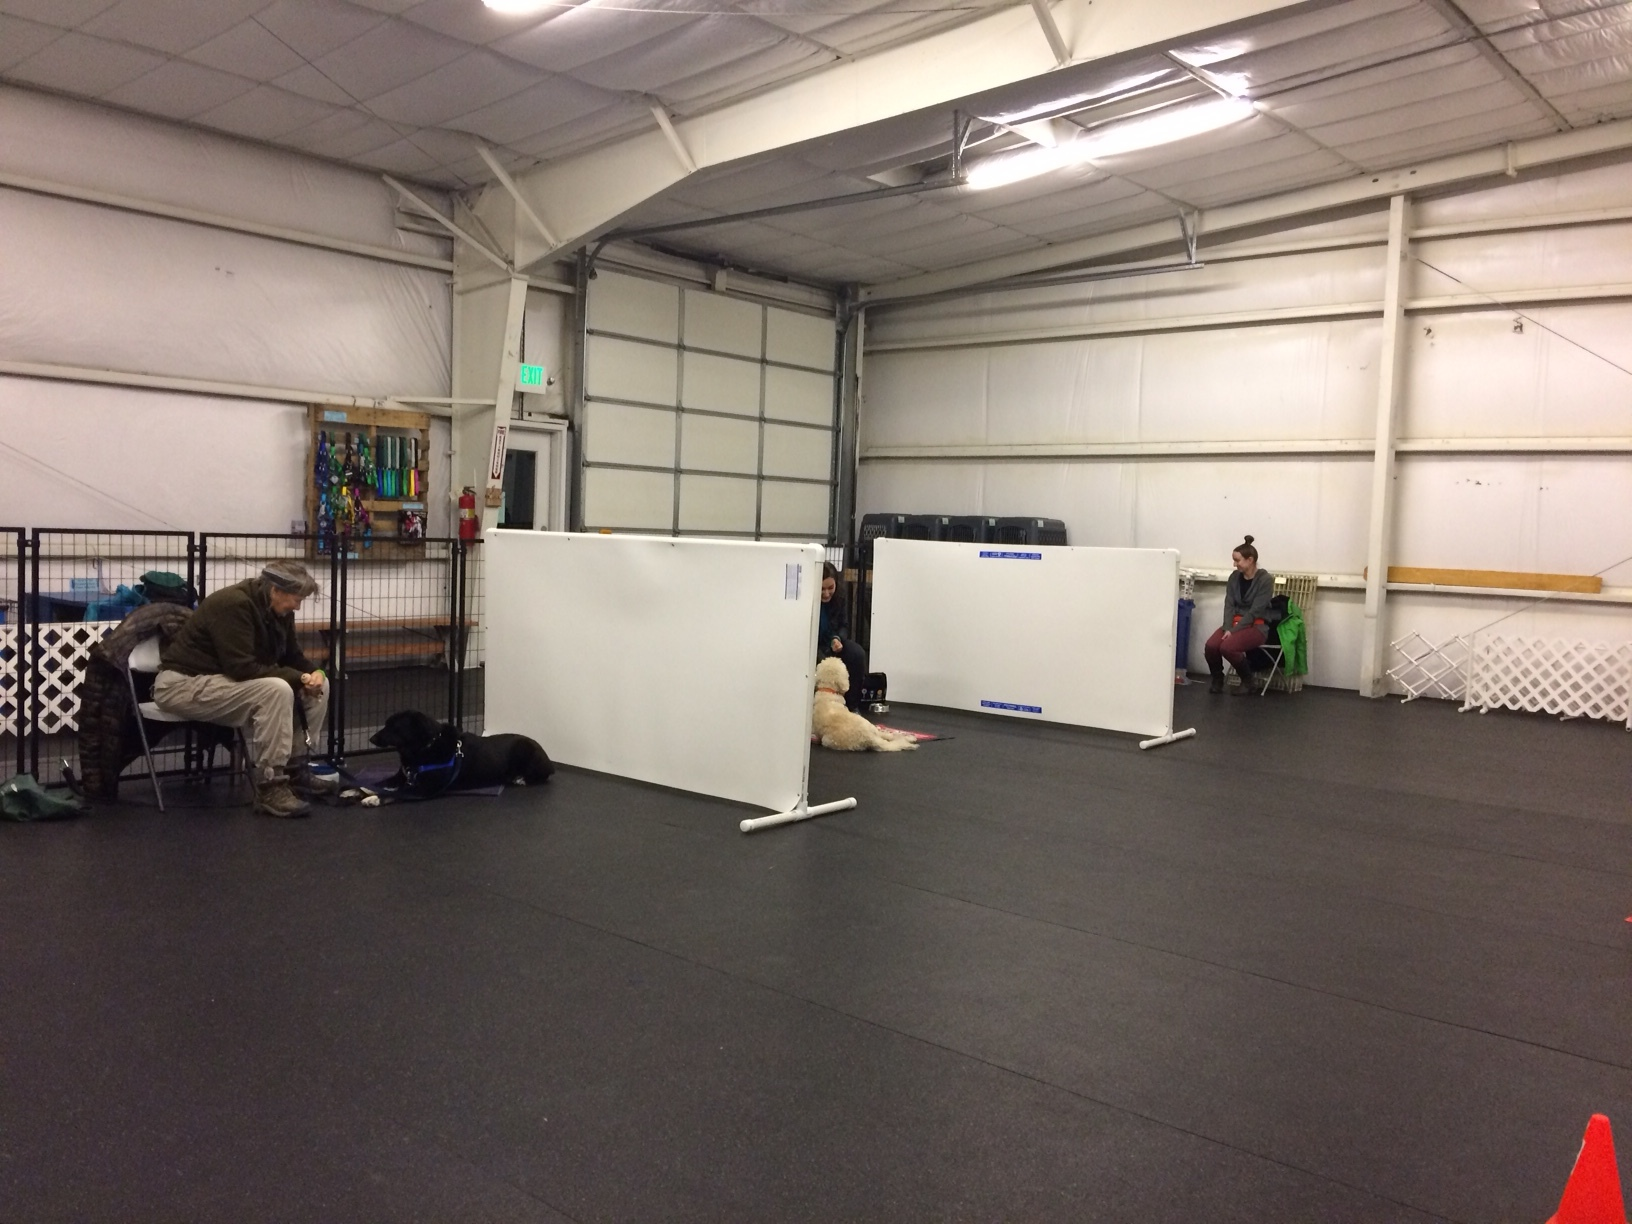 The class environment is set up for a maximum of 6 dogs, and each dog has their own area divided by visual barriers to set them up for success.